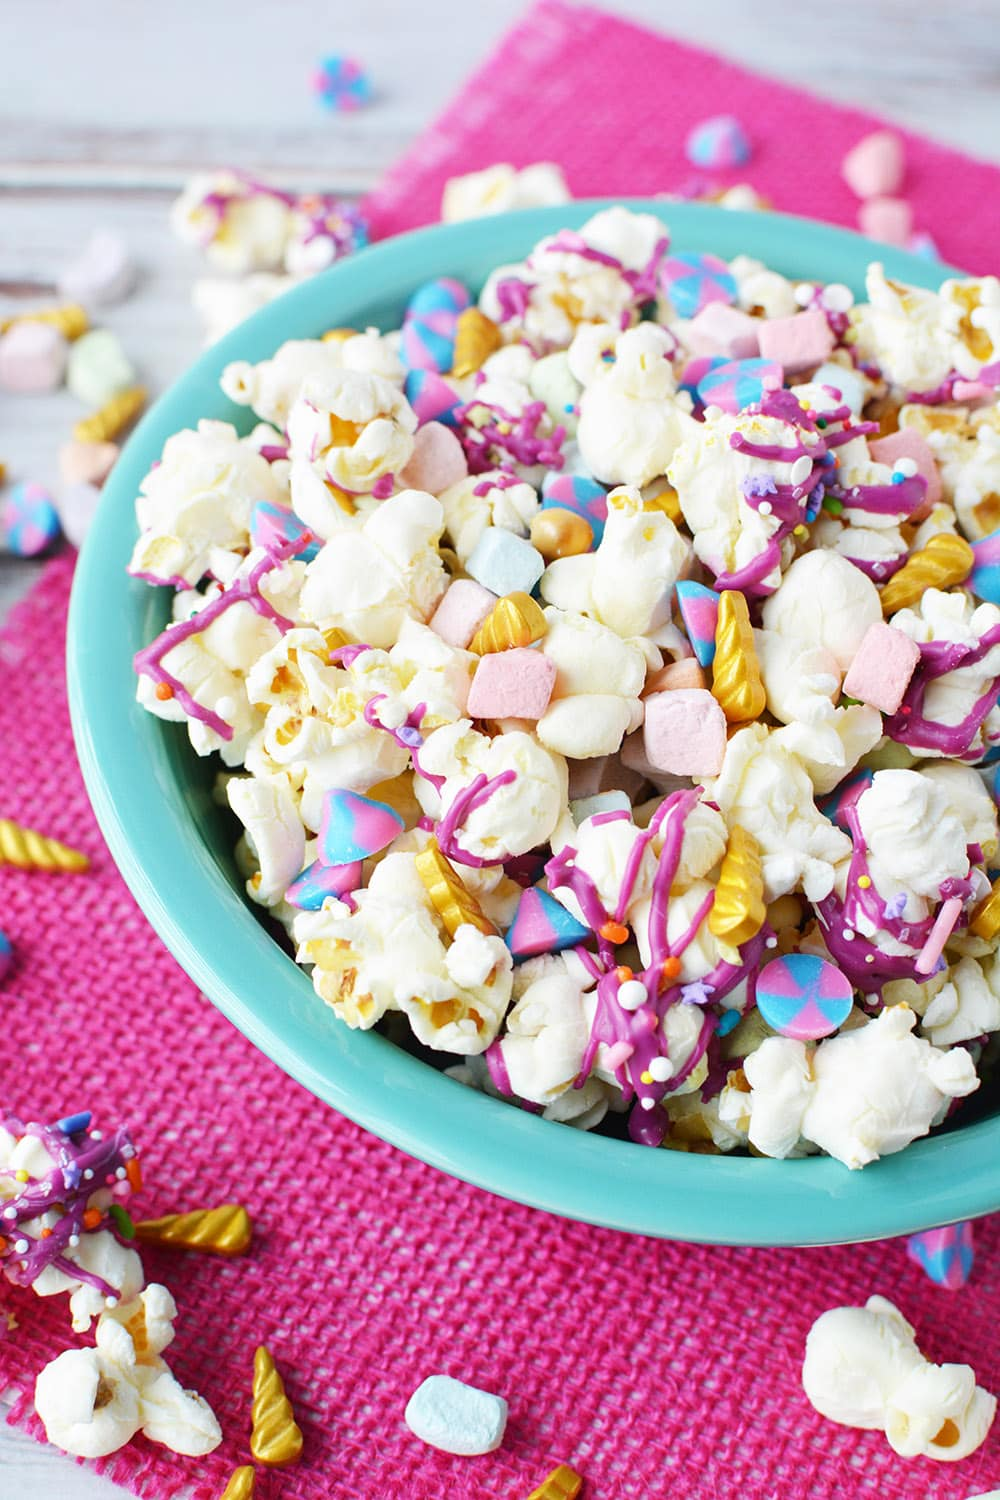 Colorful popcorn in a blue bowl.